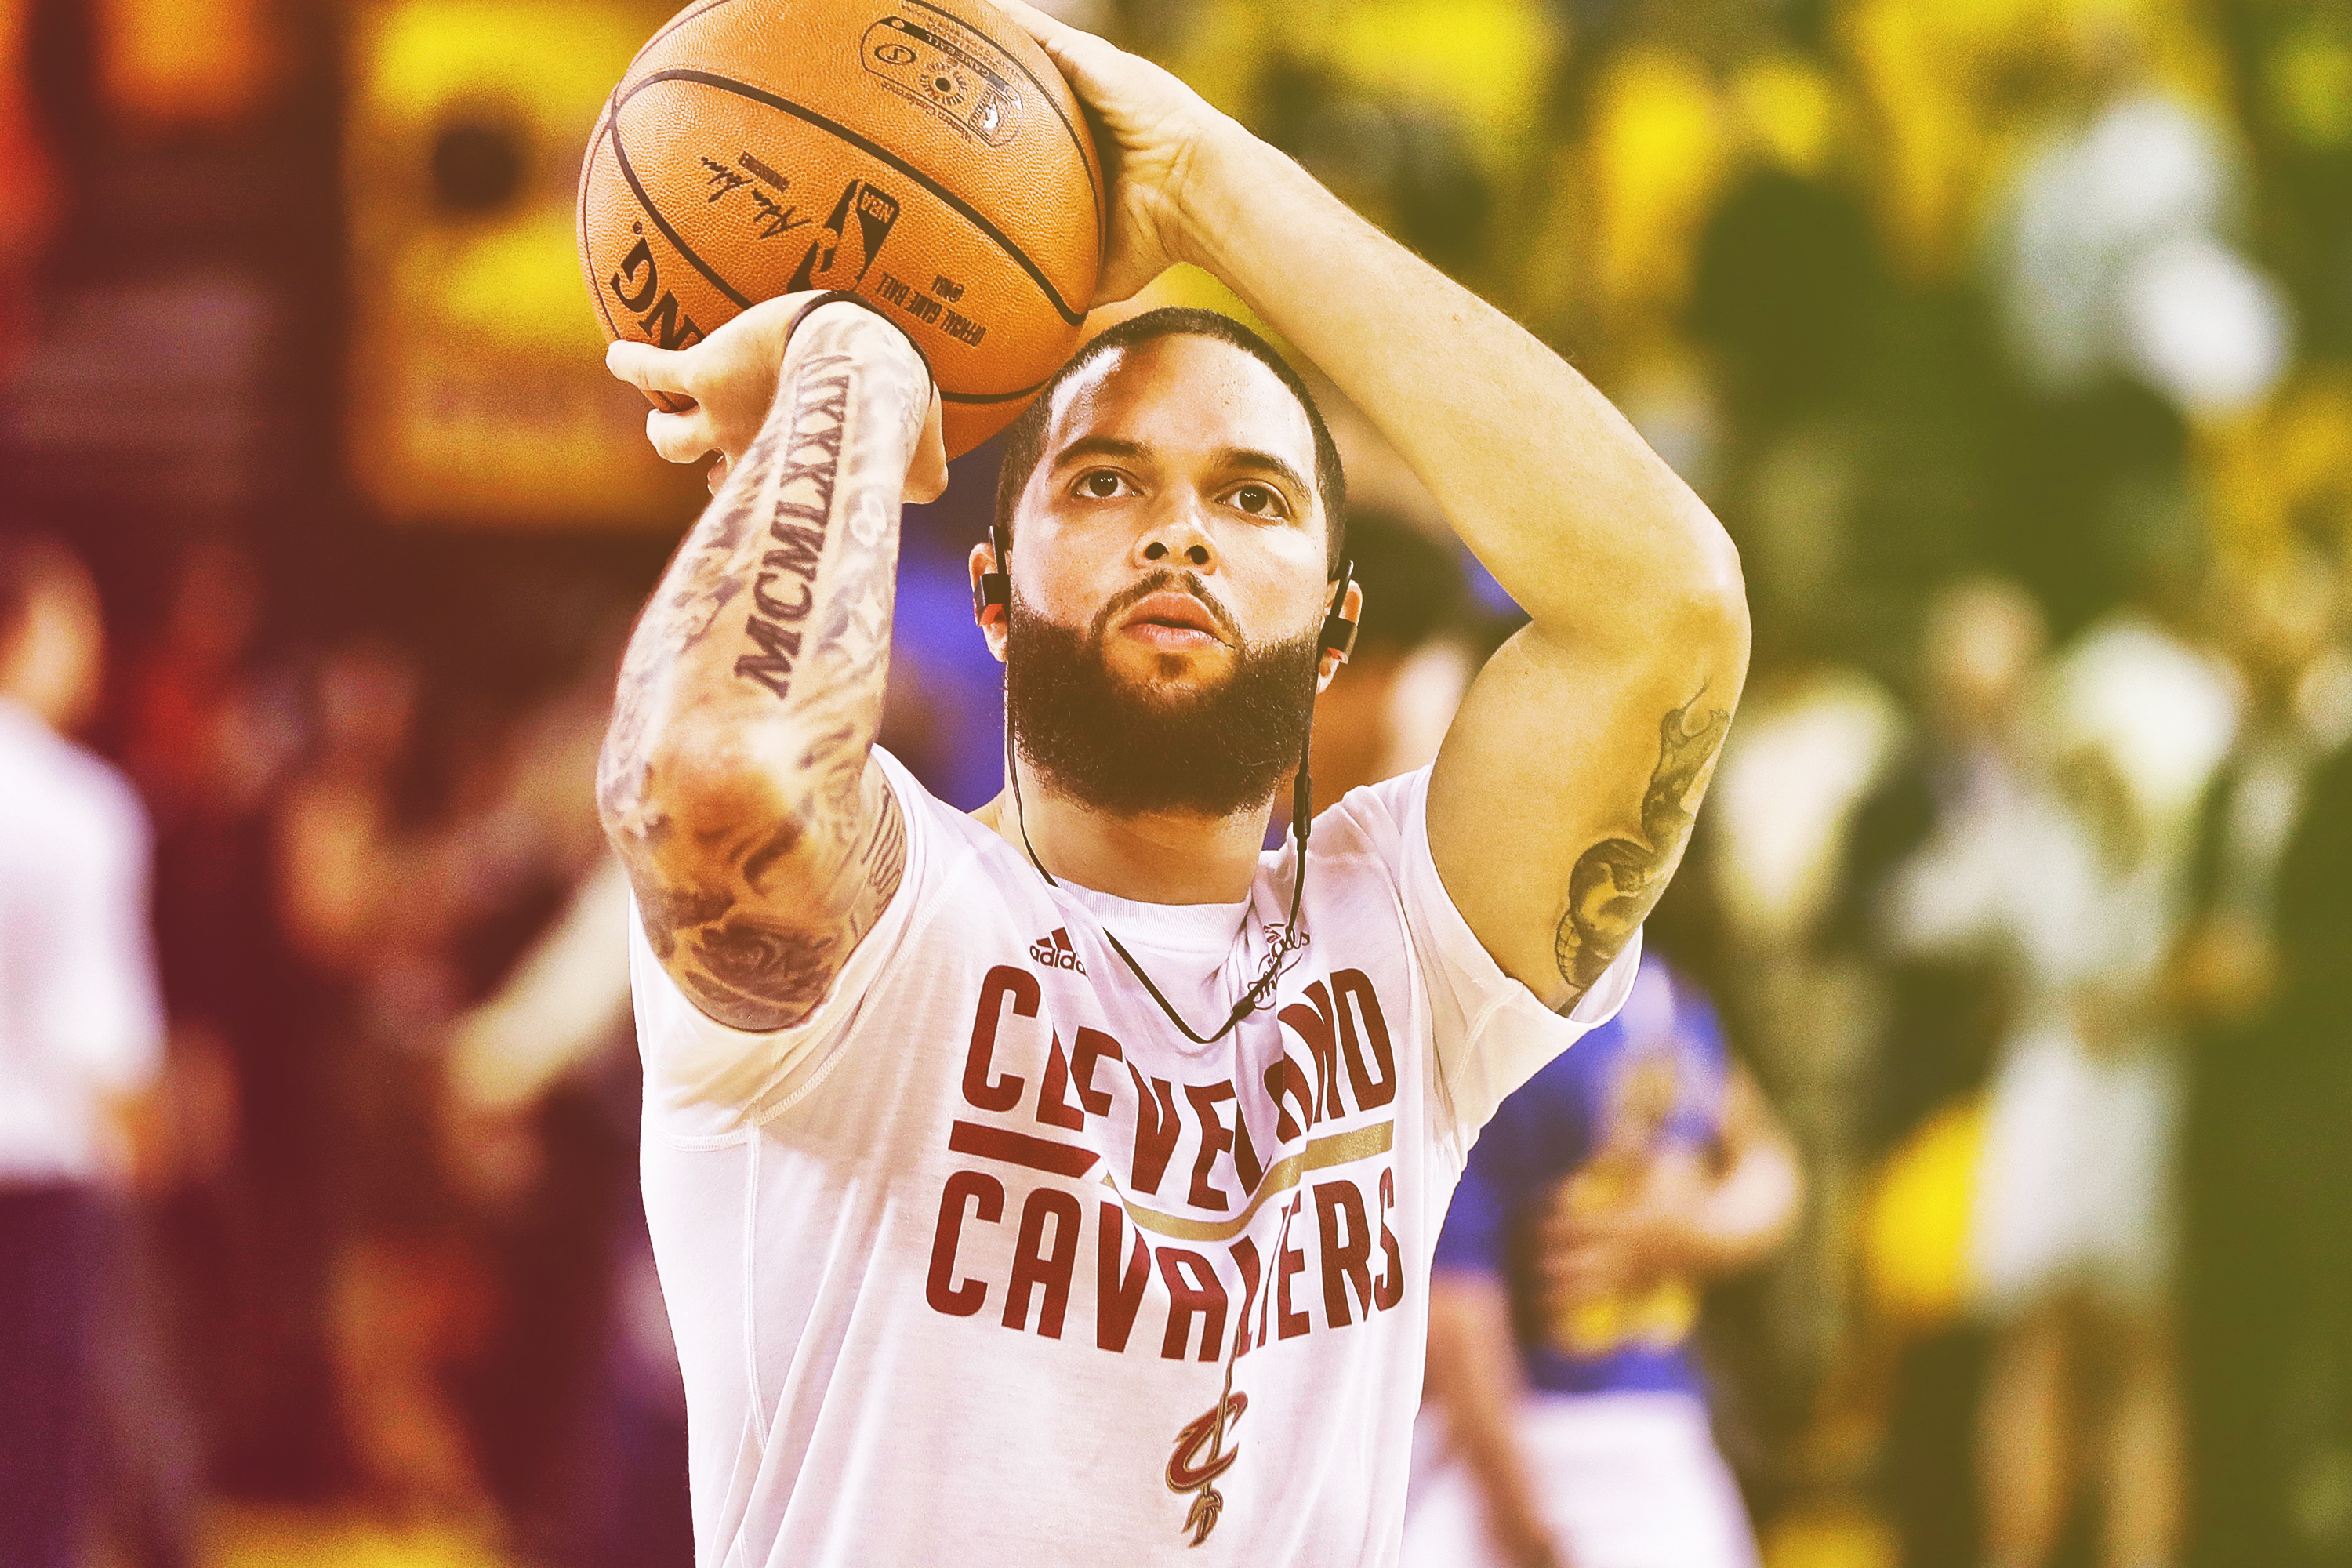 Deron Williams Is Not in the NBA, and He Doesn't Seem to Care ...